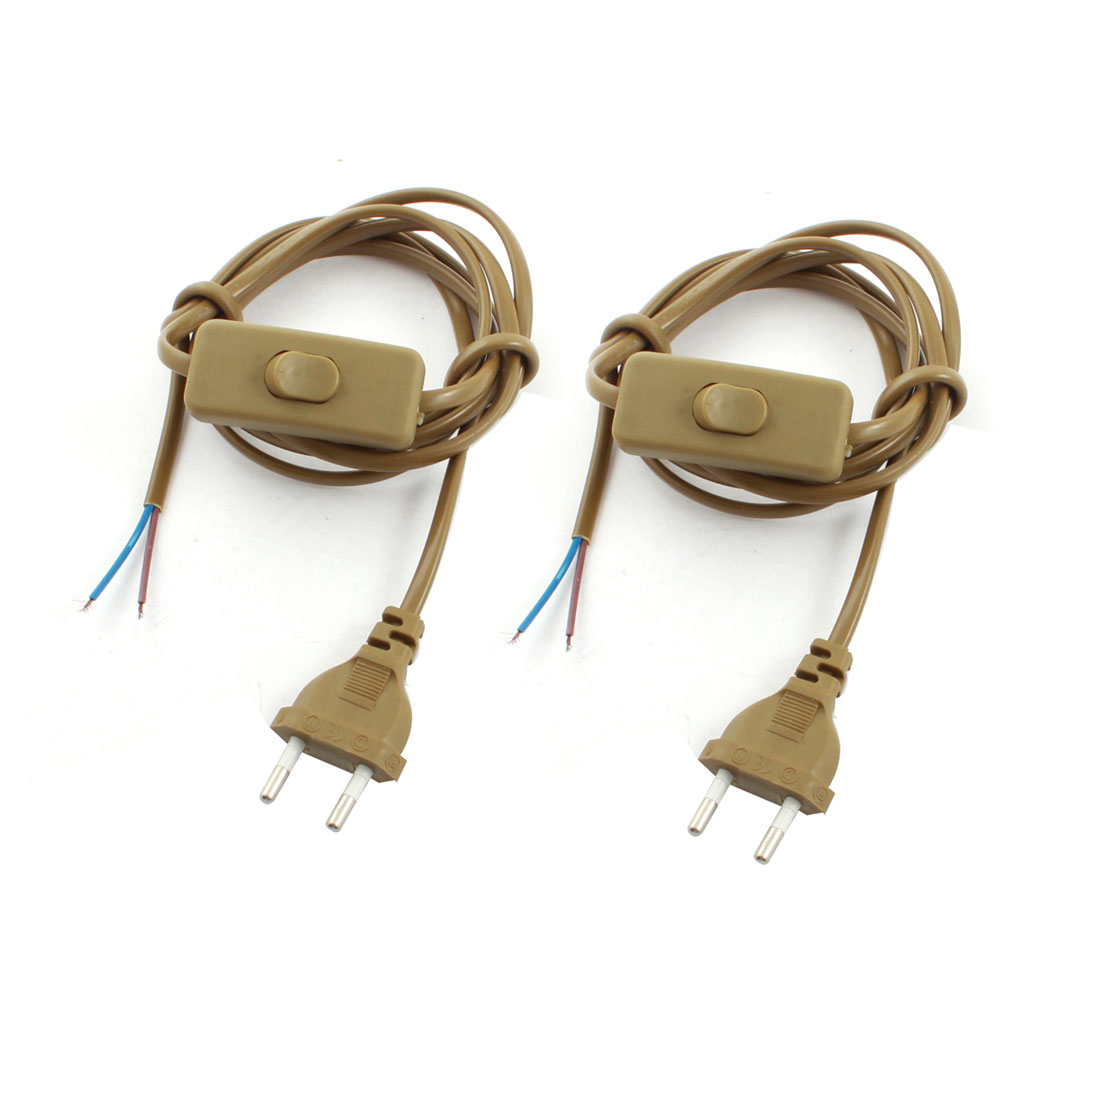 2Pcs Brown EU Plug 2Pin On-Off SPST Locking Light Power Cord Inline Button Switch 1.8M AC110V AC250V